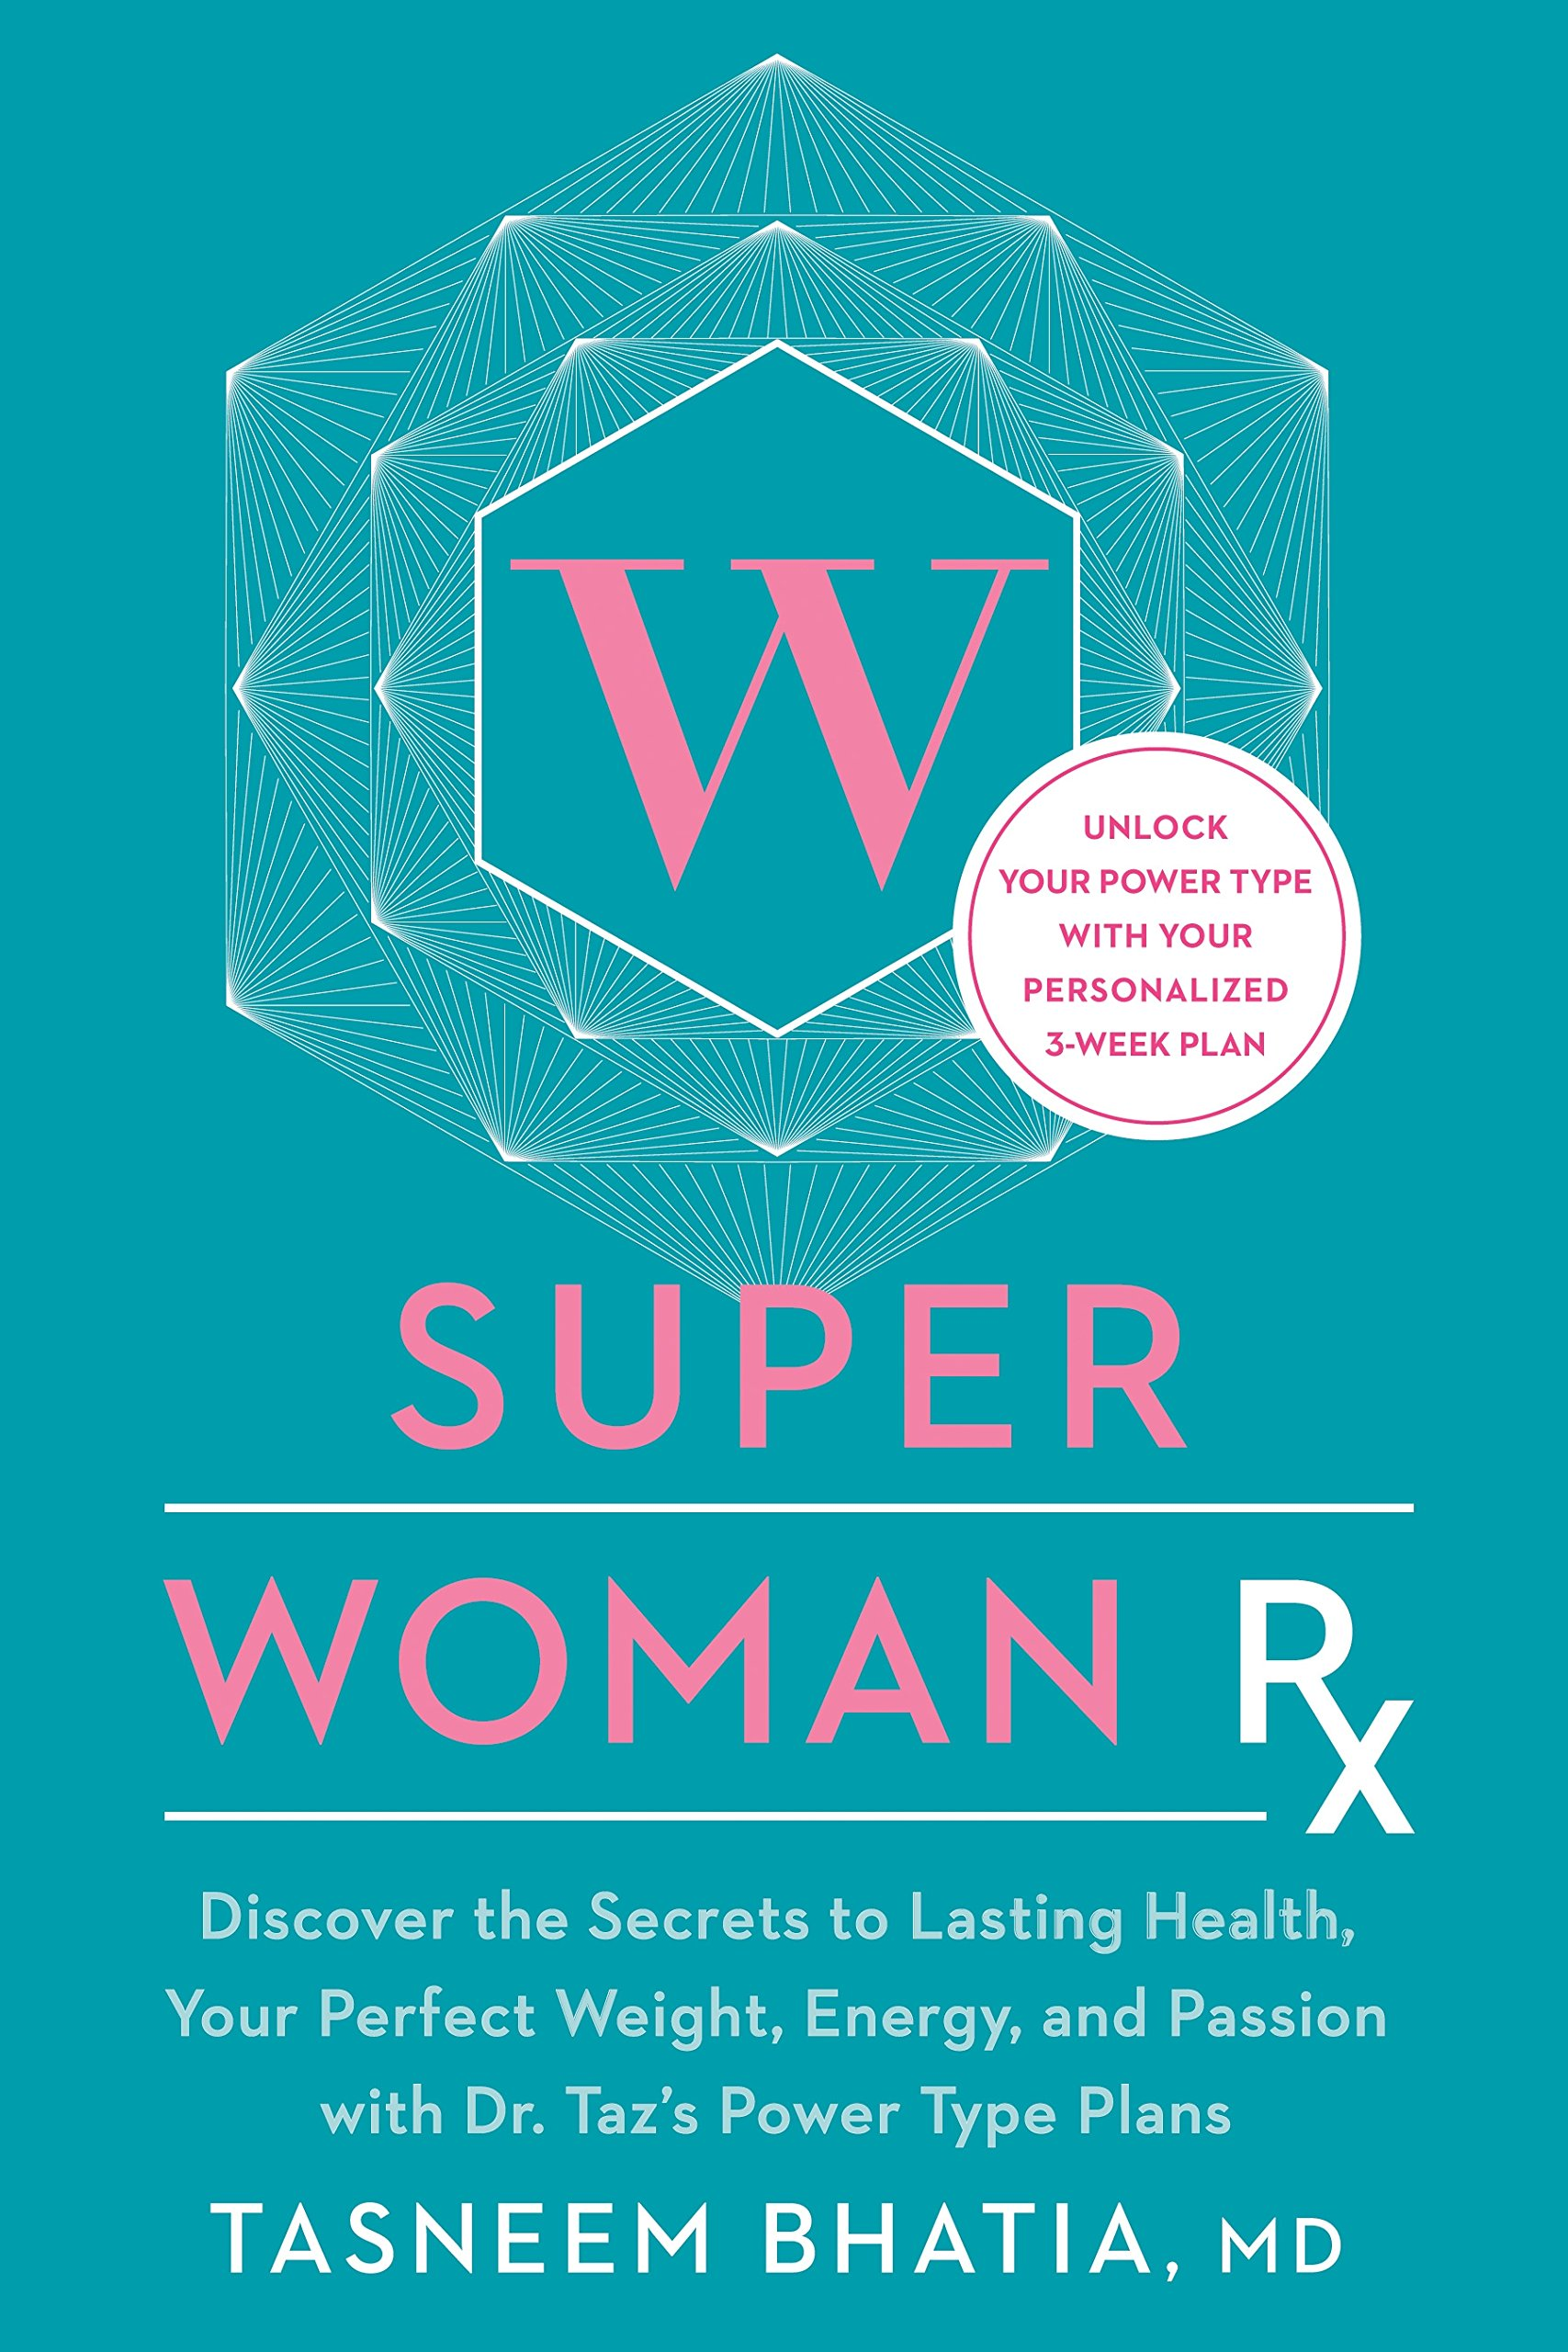 Super Woman Rx: Unlock the Secrets to Lasting Health, Your Perfect Weight, Energy, and Passion with Dr. Taz's Power Type Plans